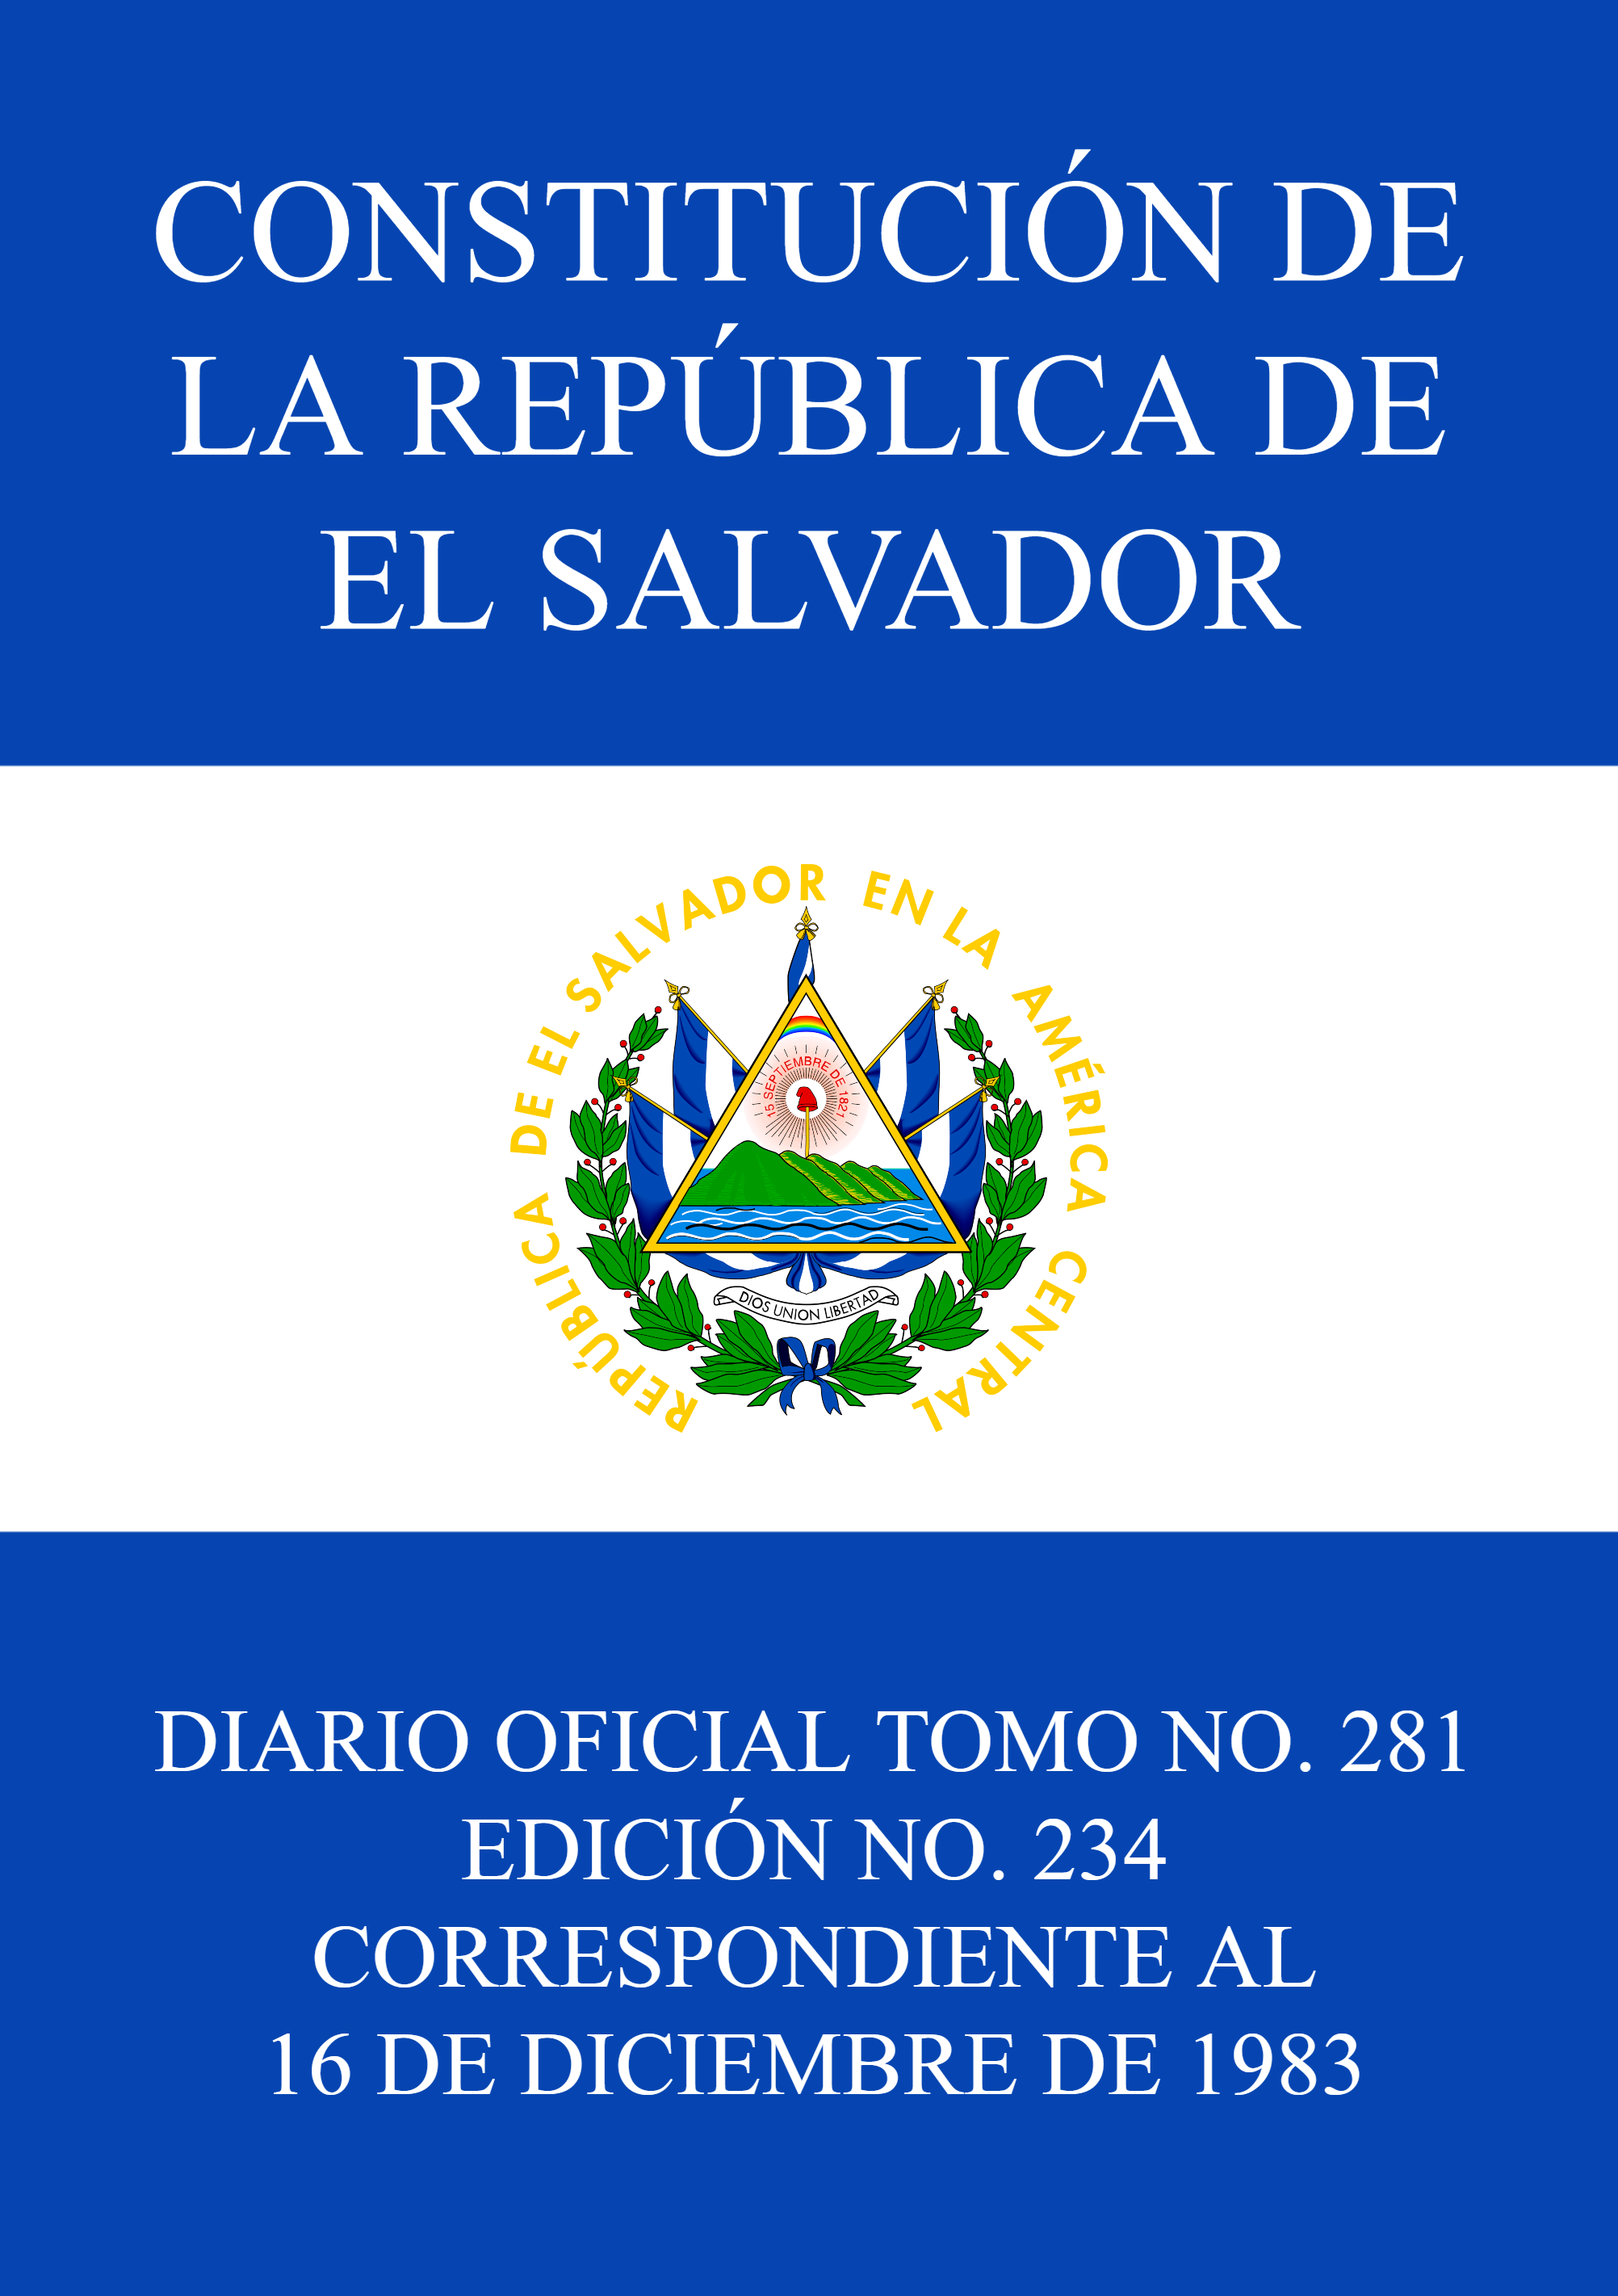 Constitution of El Salvador.